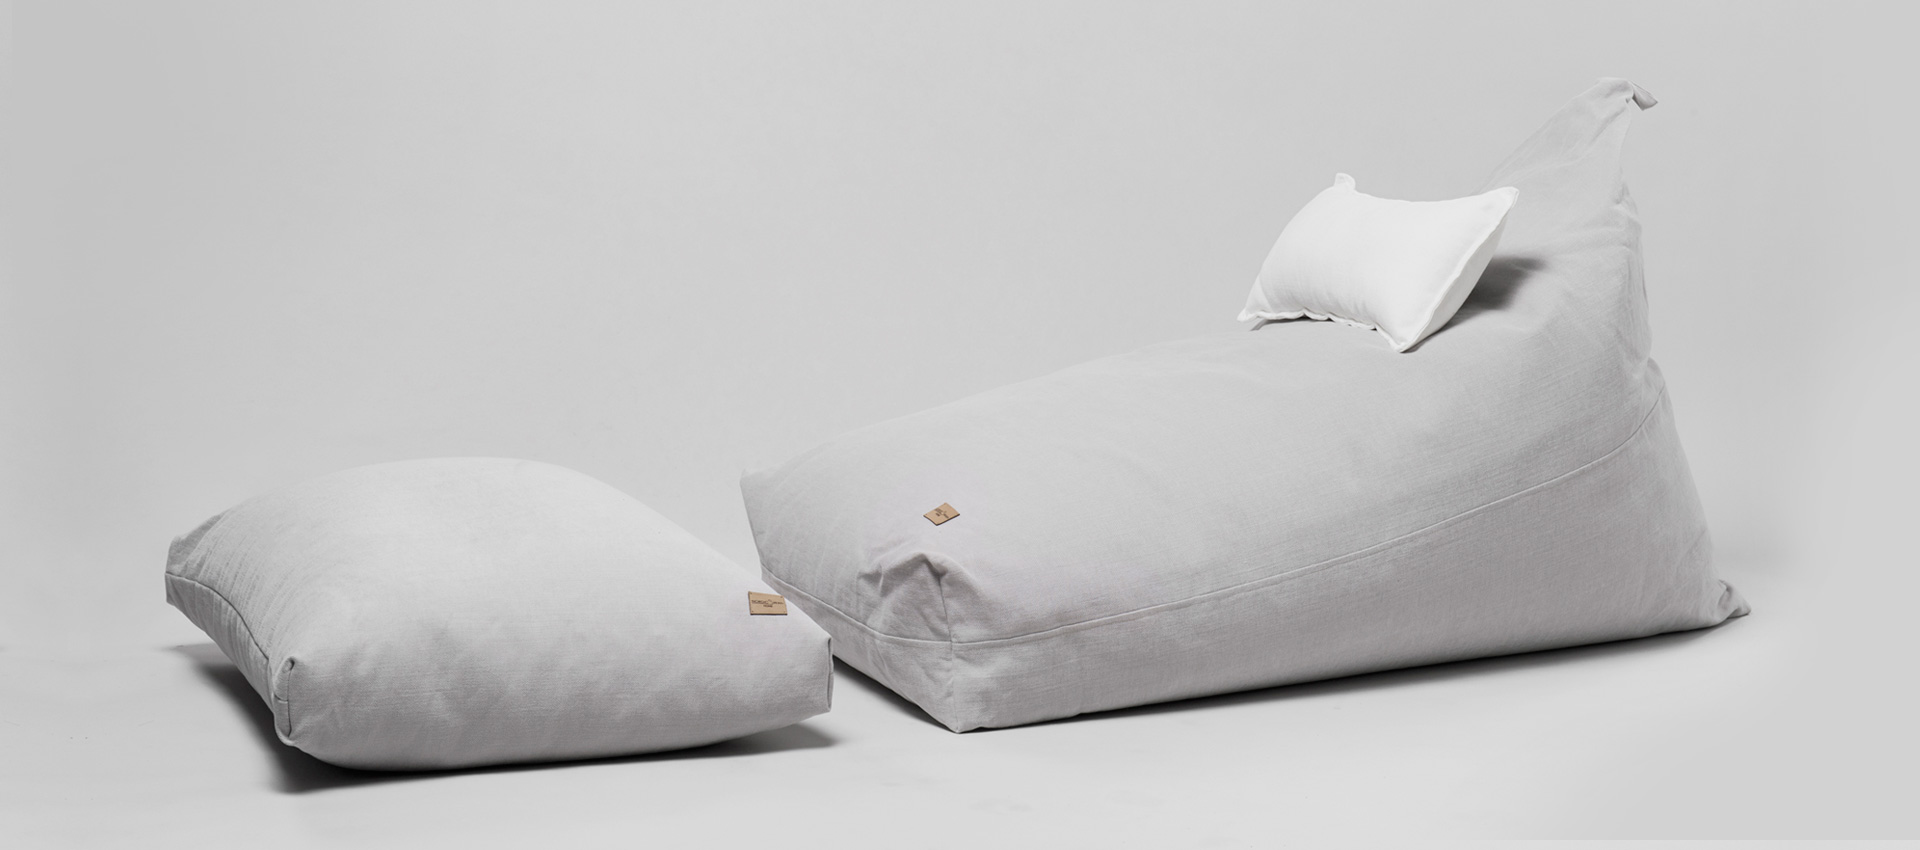 PREMIUM ACCESSORIES AND HOME TEXTILES UPGRADE YOUR EVERYDAY LIFE WITH FINEST SOFT NATURAL MATERIALS.